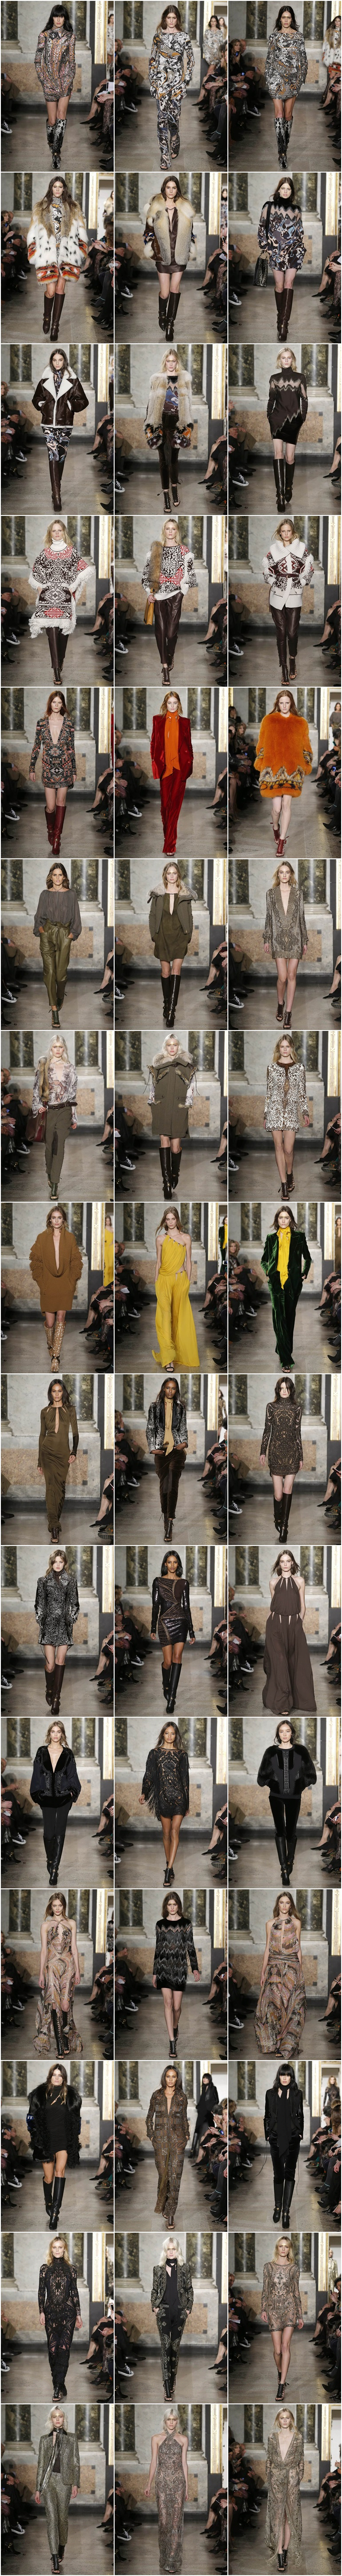 emilio-pucci-fall-winter-2014-fashion4addicts